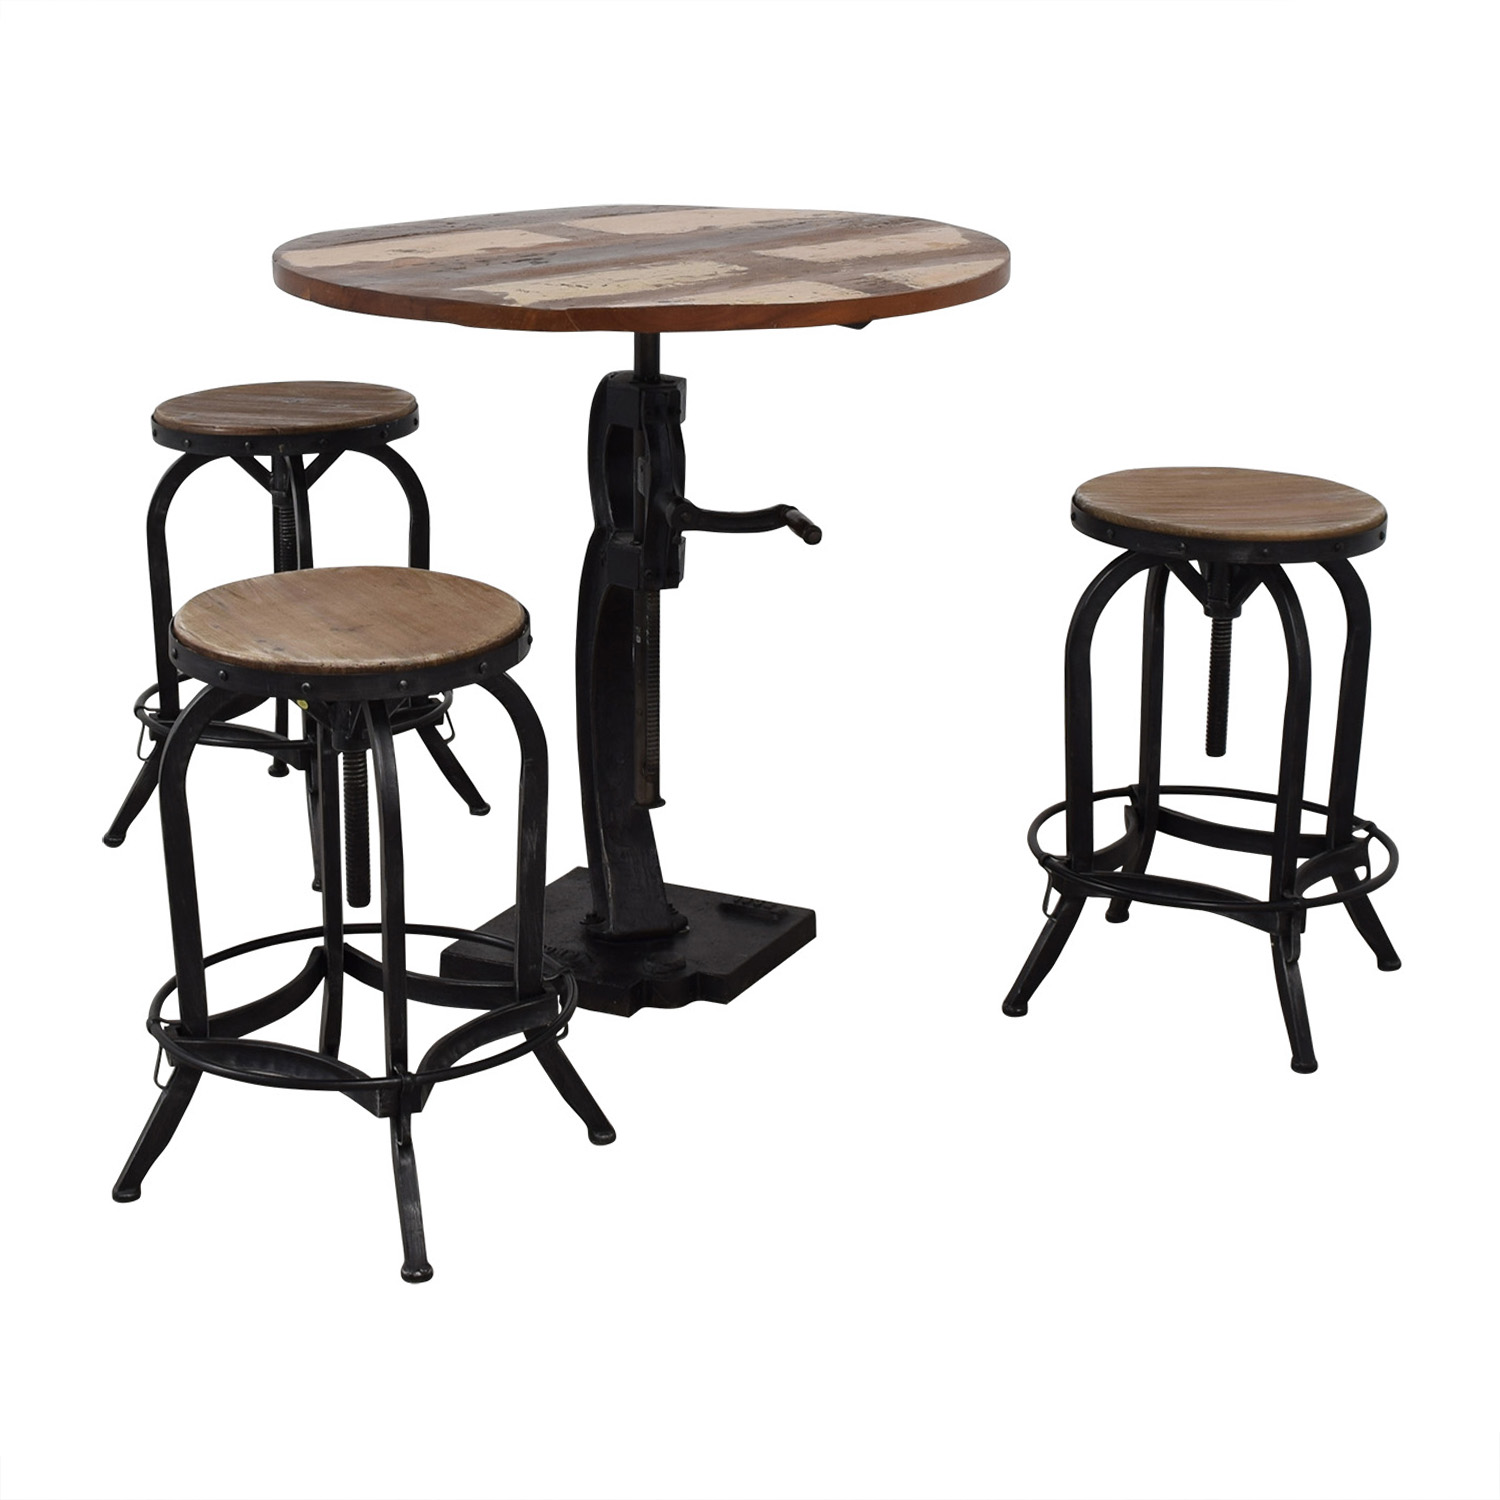 shop Overstock Overstock Paria Collection Solid Mango Wood Table and Chairs online